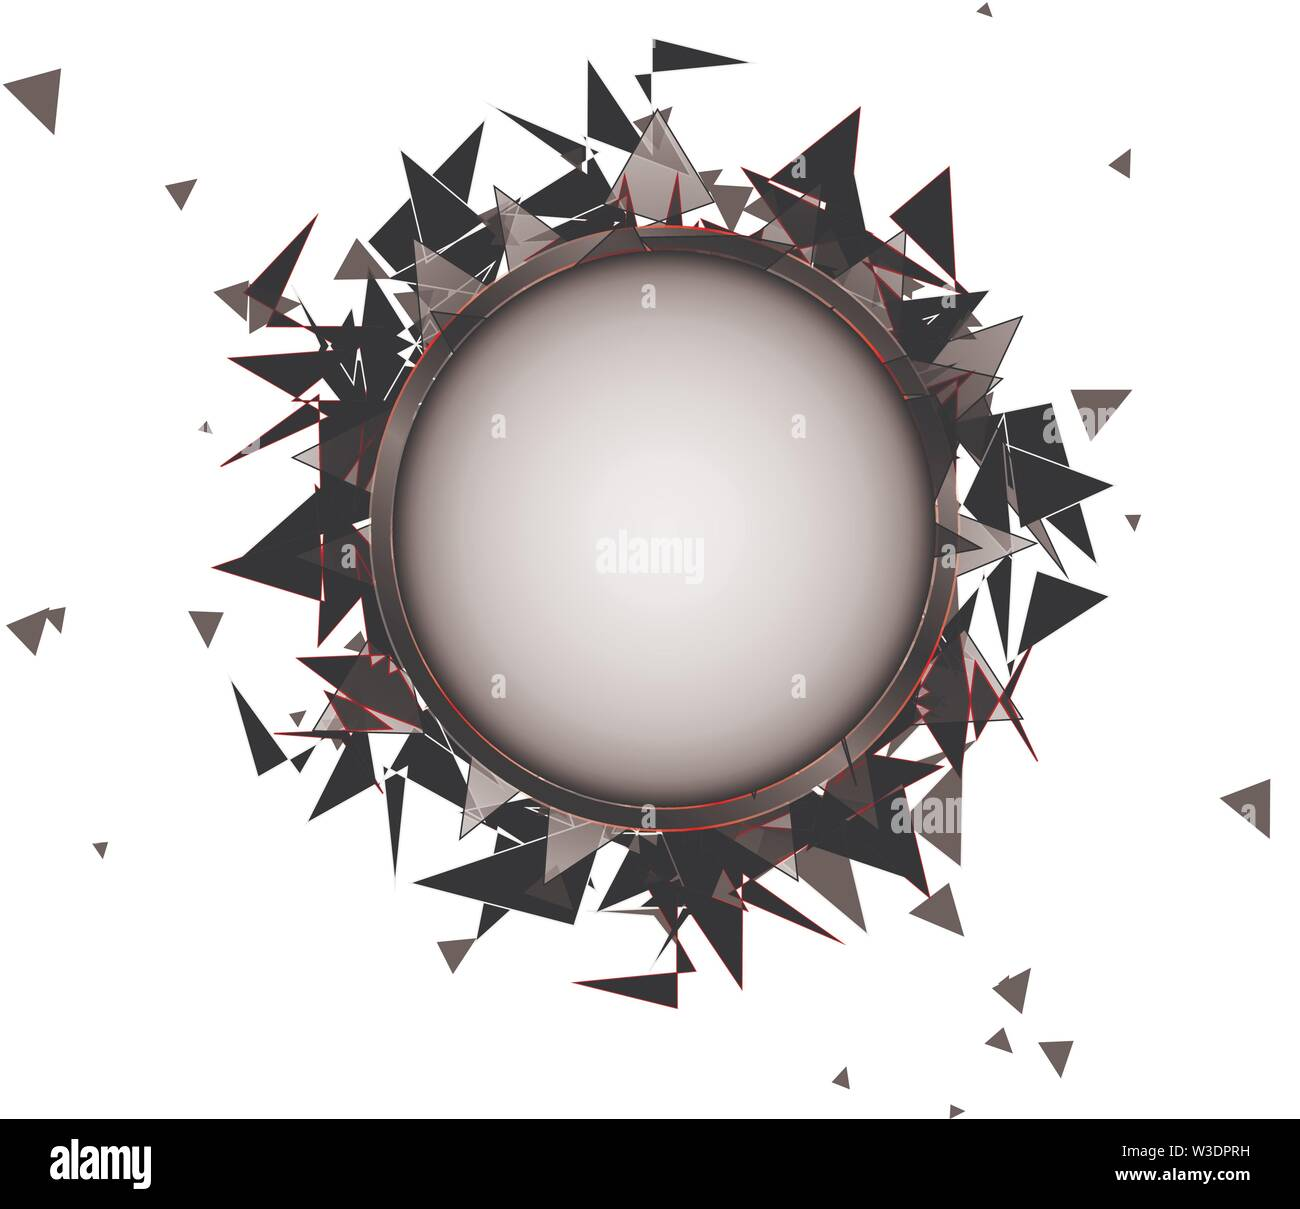 Abstract explosion of black glass on a white background - Stock Image